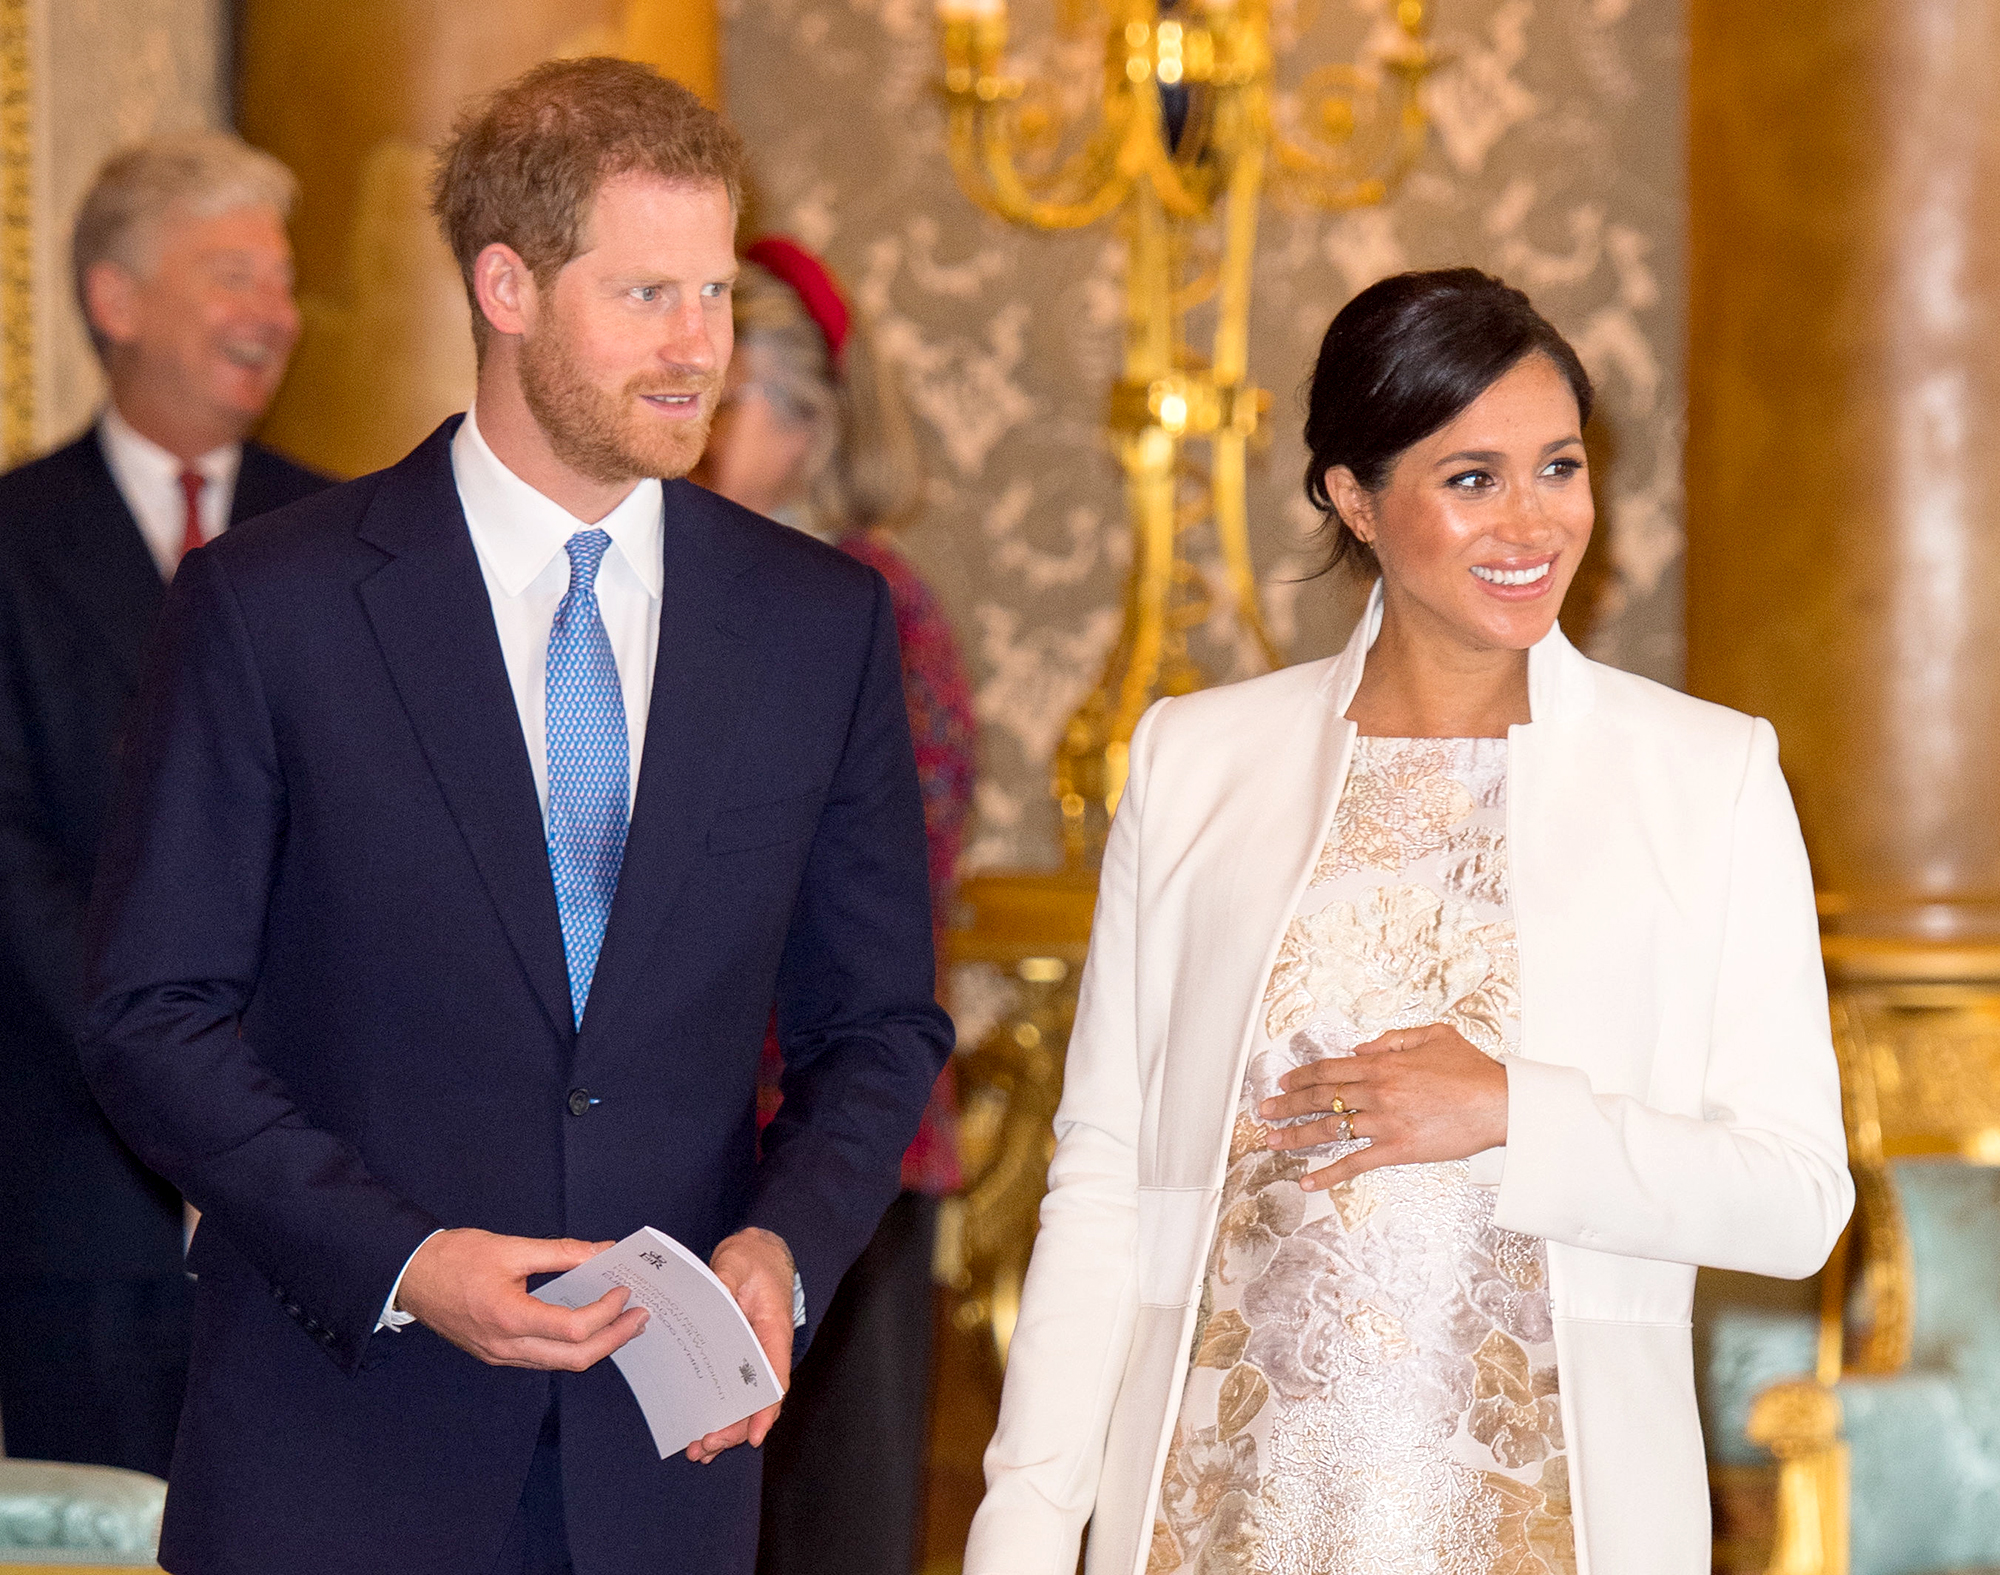 prince-harry-duchess-meghan-Tina--The-Musical-at-Aldwych-Theatre - Before their baby's arrival, the royal couple squeezed in some one-on-one time with a London date night on March 2. The pair watched Tina: The Musical at Aldwych Theatre.